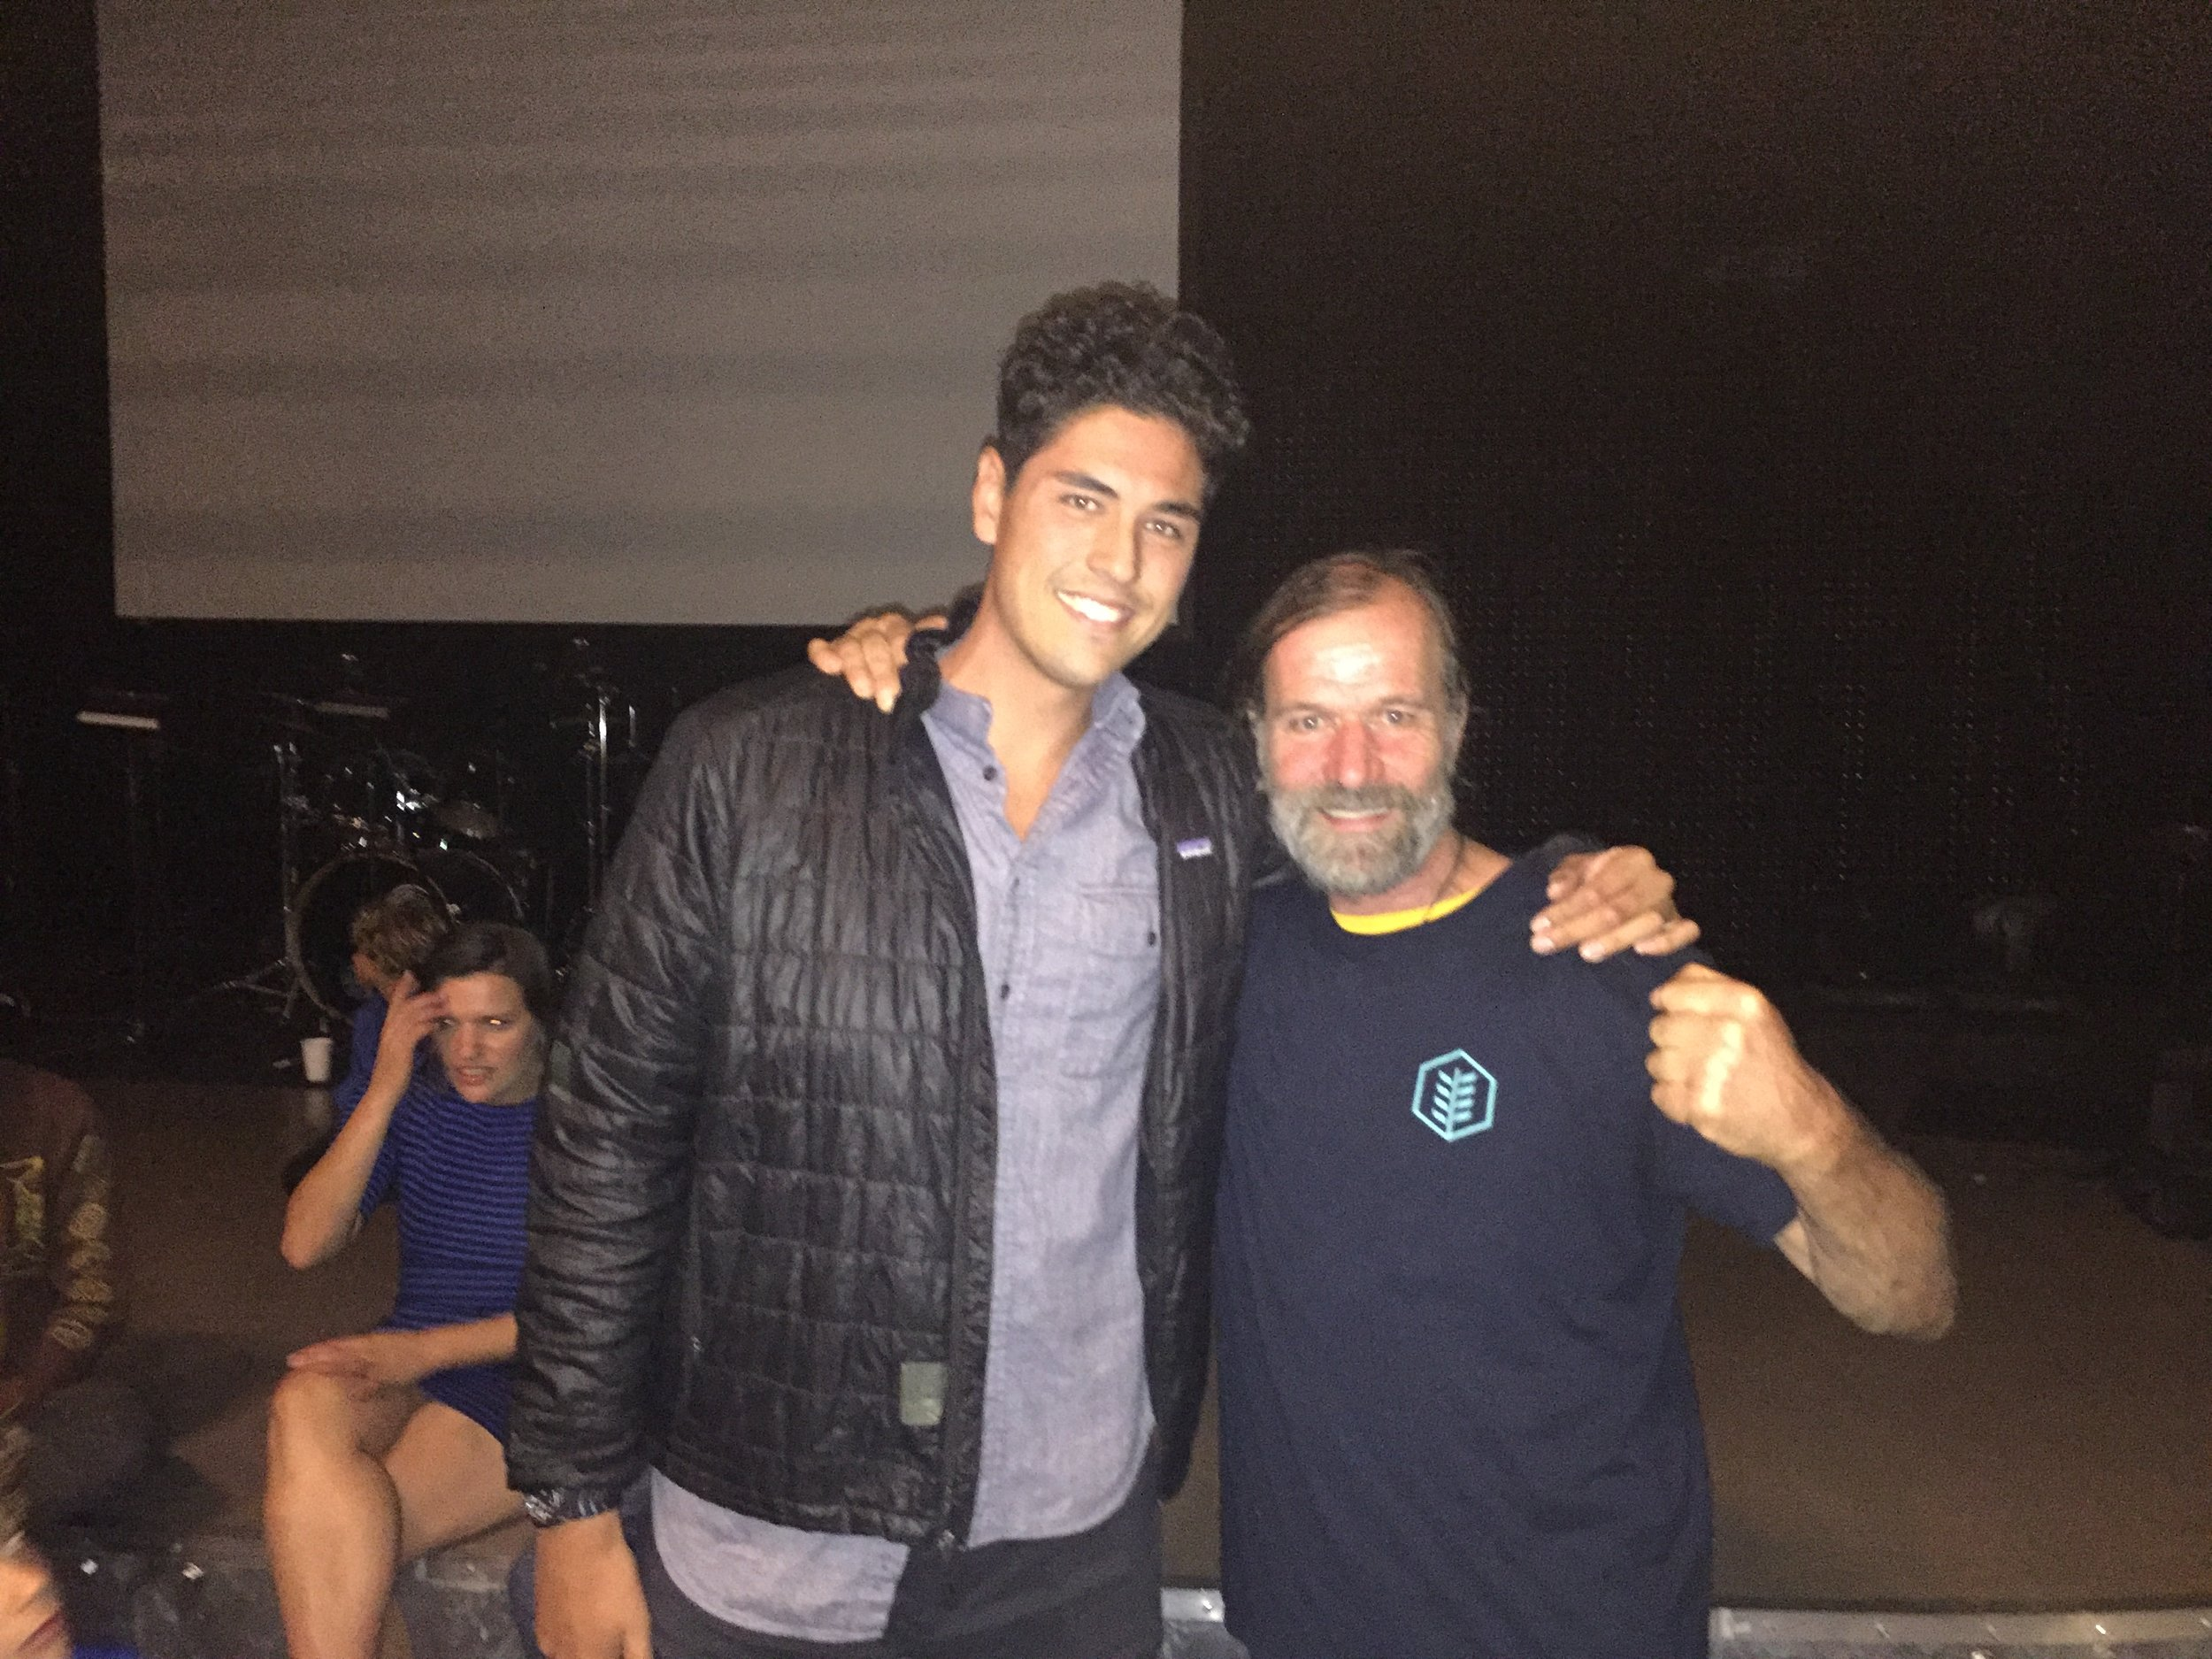 Founder, Jay Dee Morgan (left), traveled to San Francisco to attend the Wim Hof (right) workshop on October 23rd, 2016.